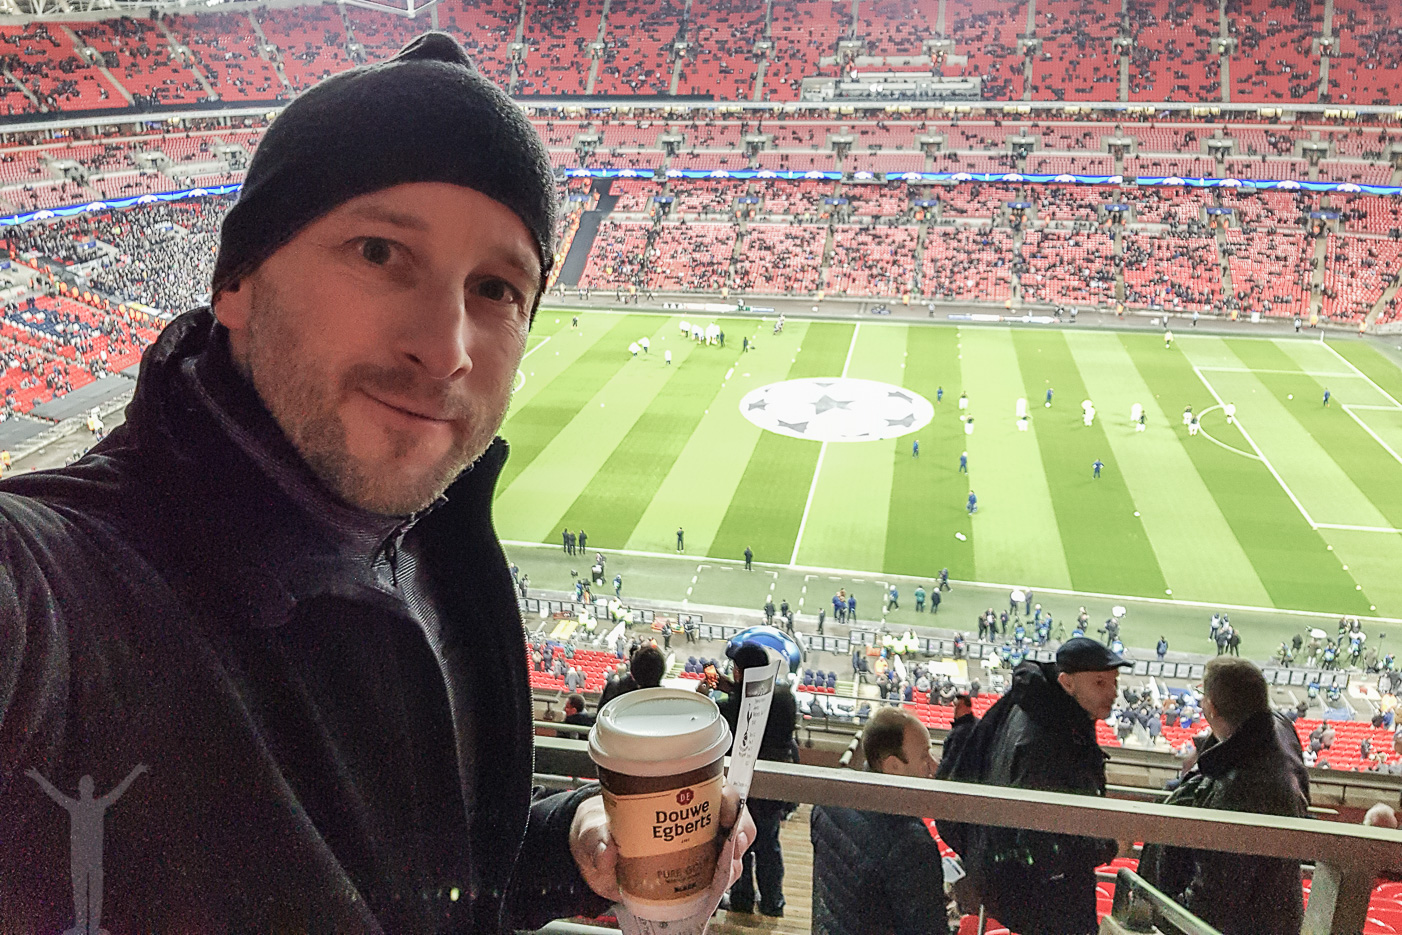 Fotbollsmatch på Wembley